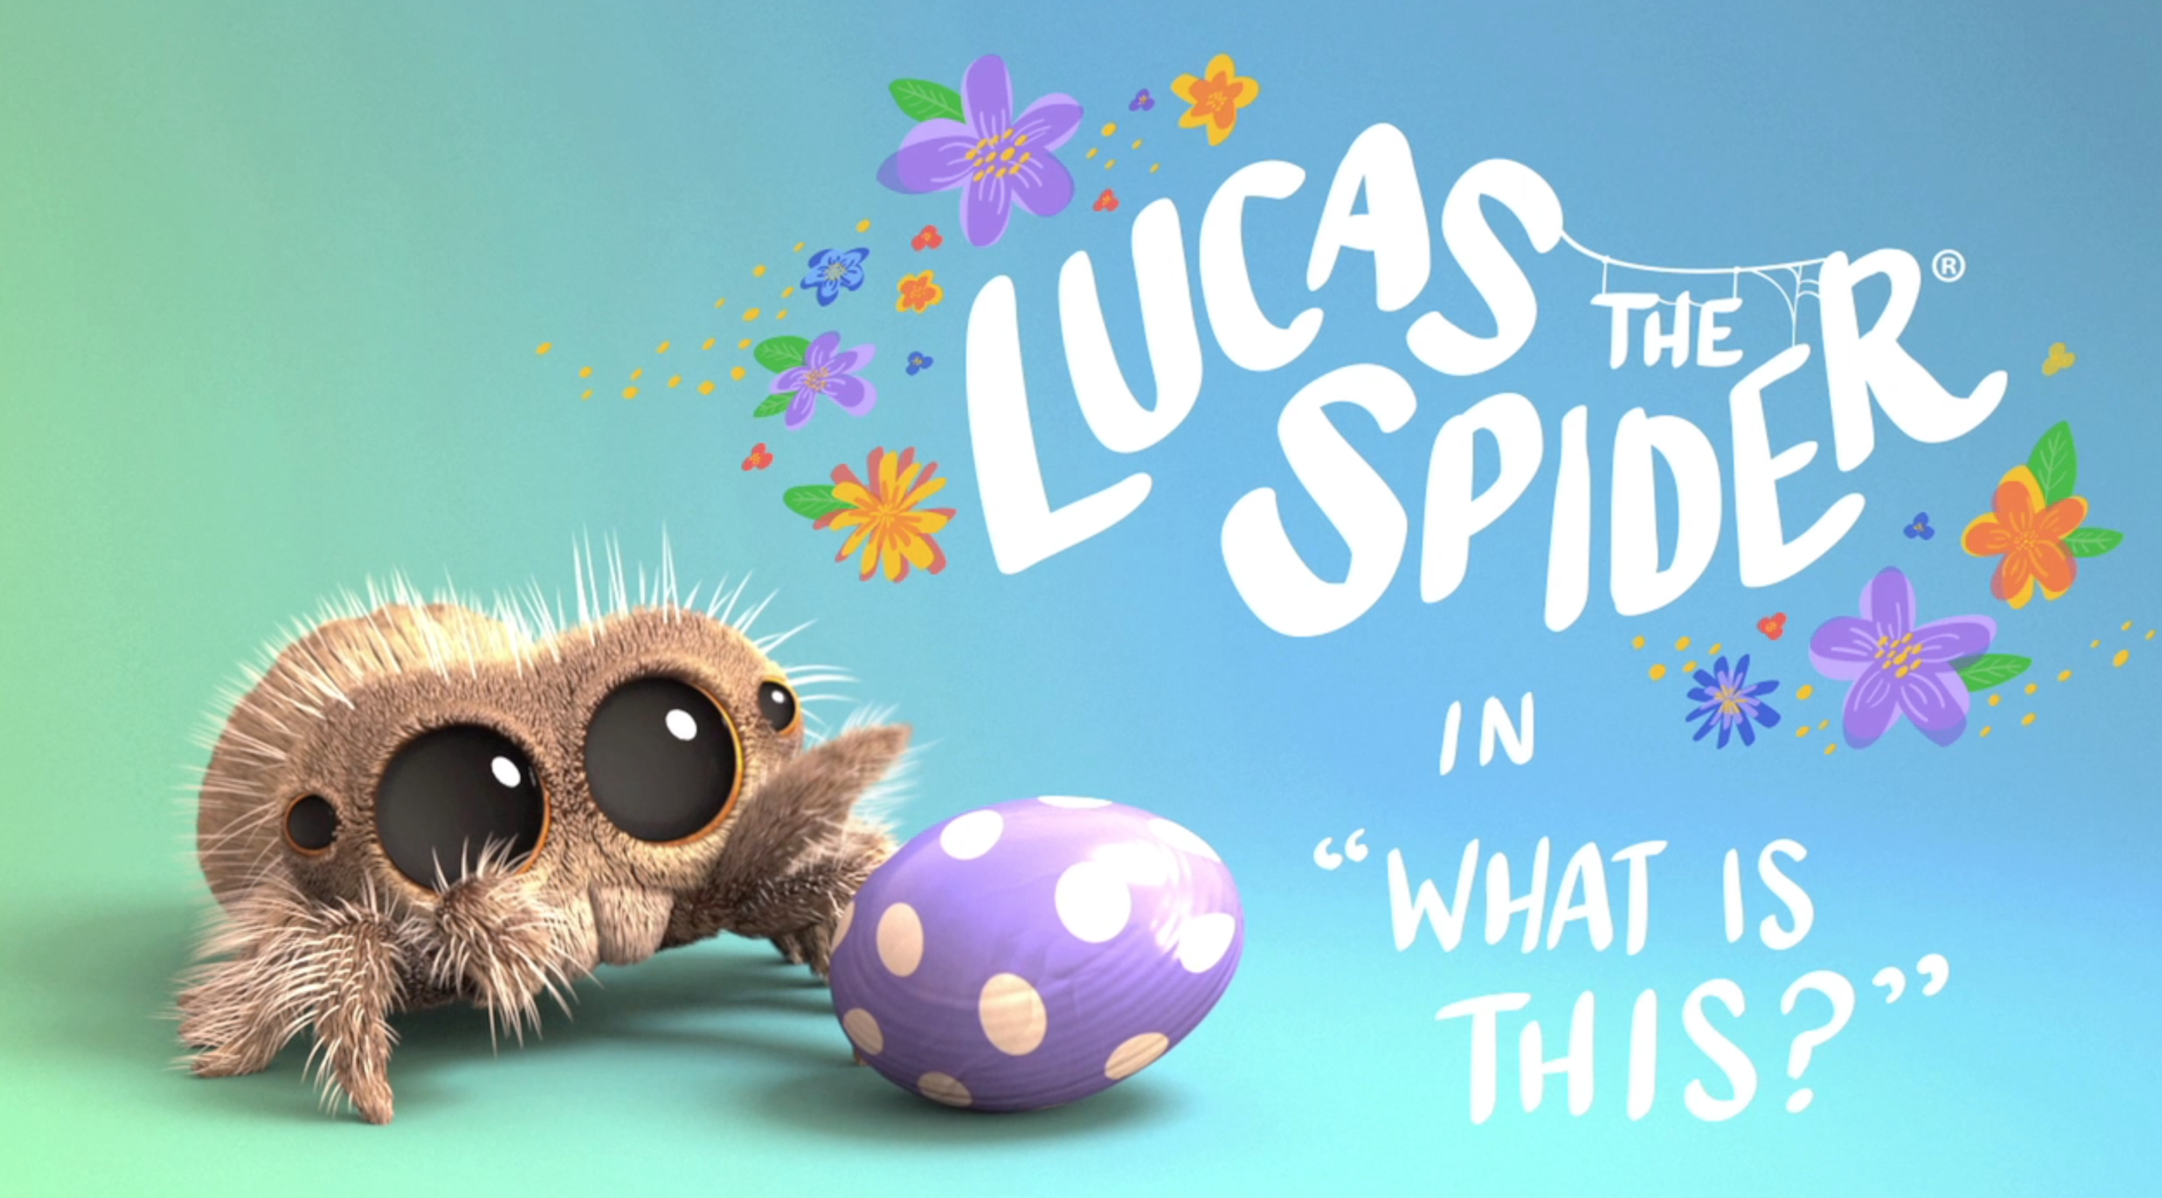 Lucas the Spider - What is This?